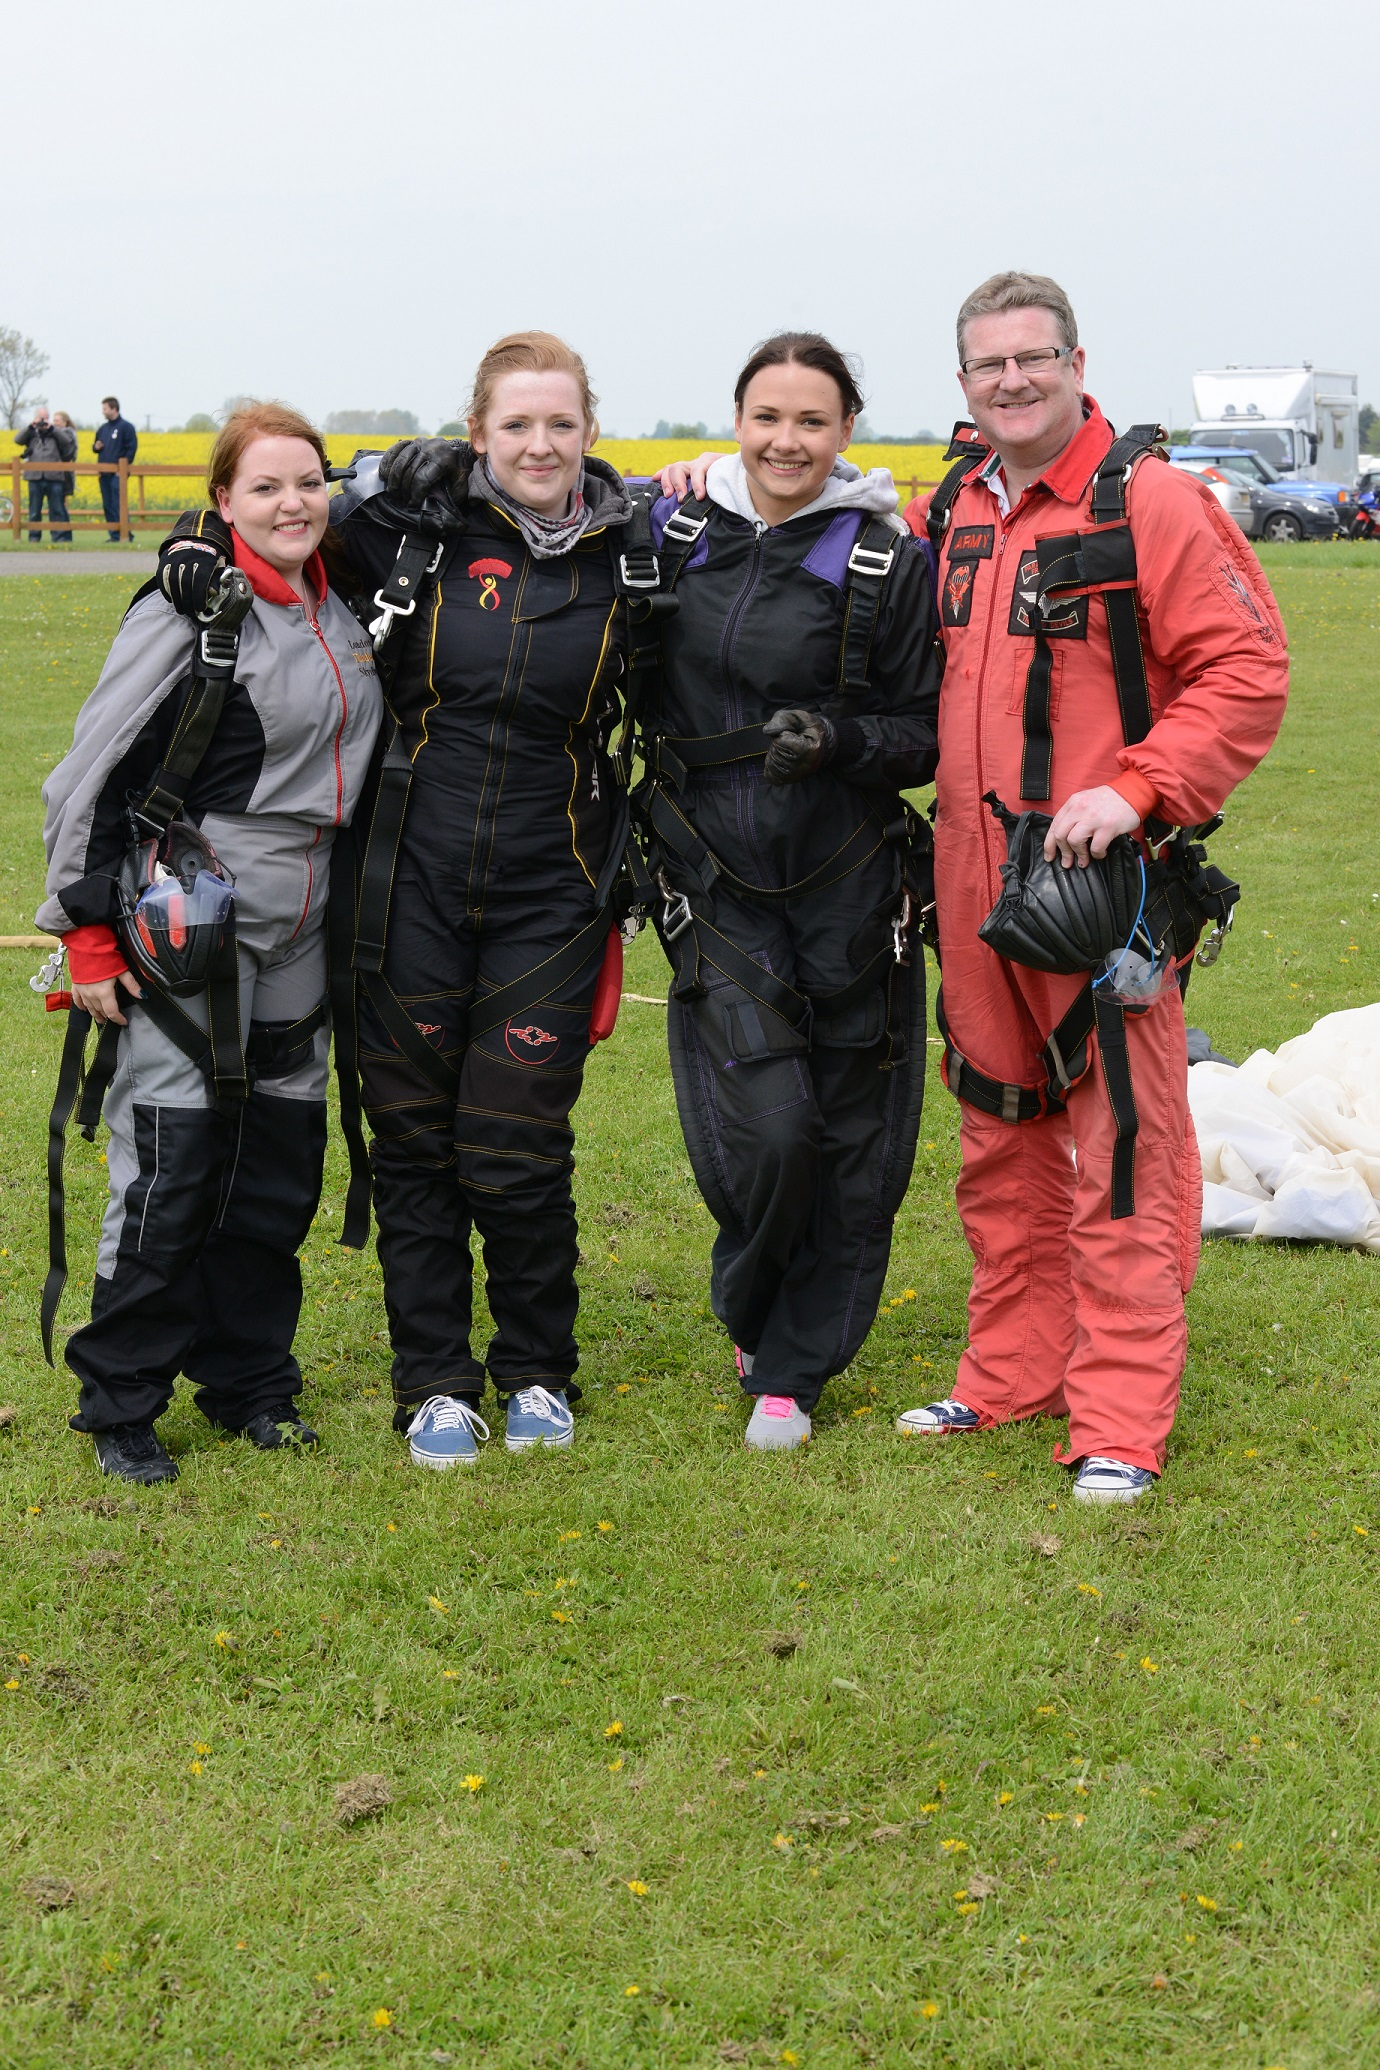 Mark Shaw after completing his skydive, with (l-r) Natalie Else, Beth Shaw and Ernesta Petkeviciute